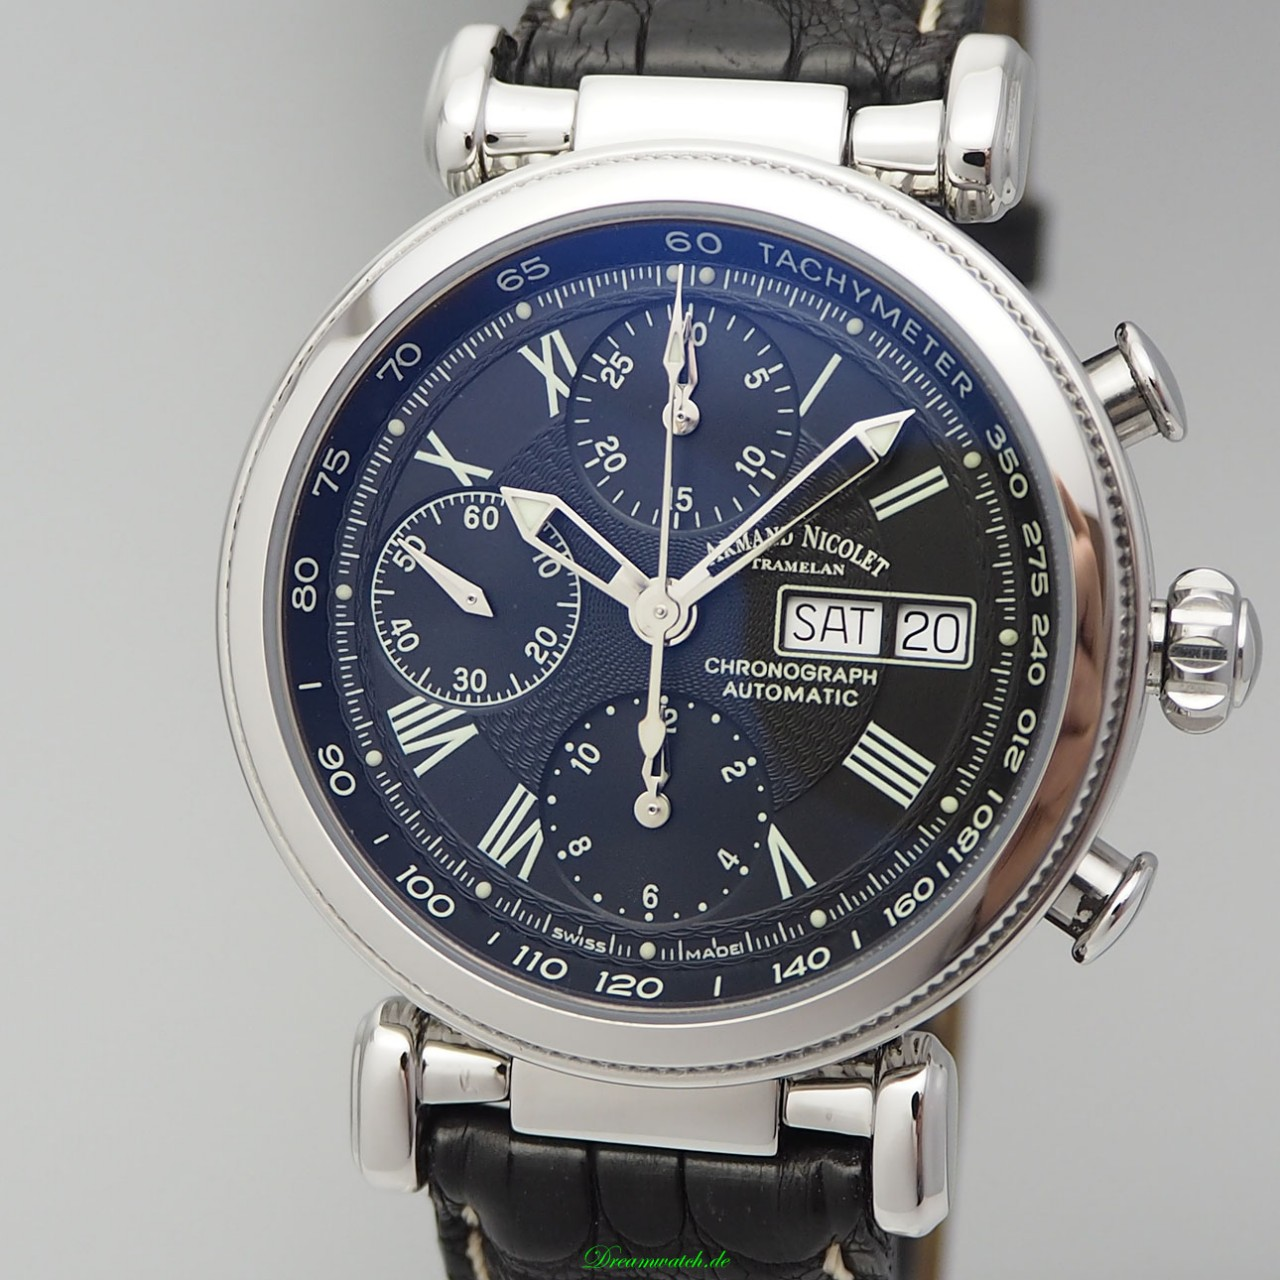 Armand Nicolet ARC Royal Chronograph Day-Date, Box+Papiere NP: 3030 Euro